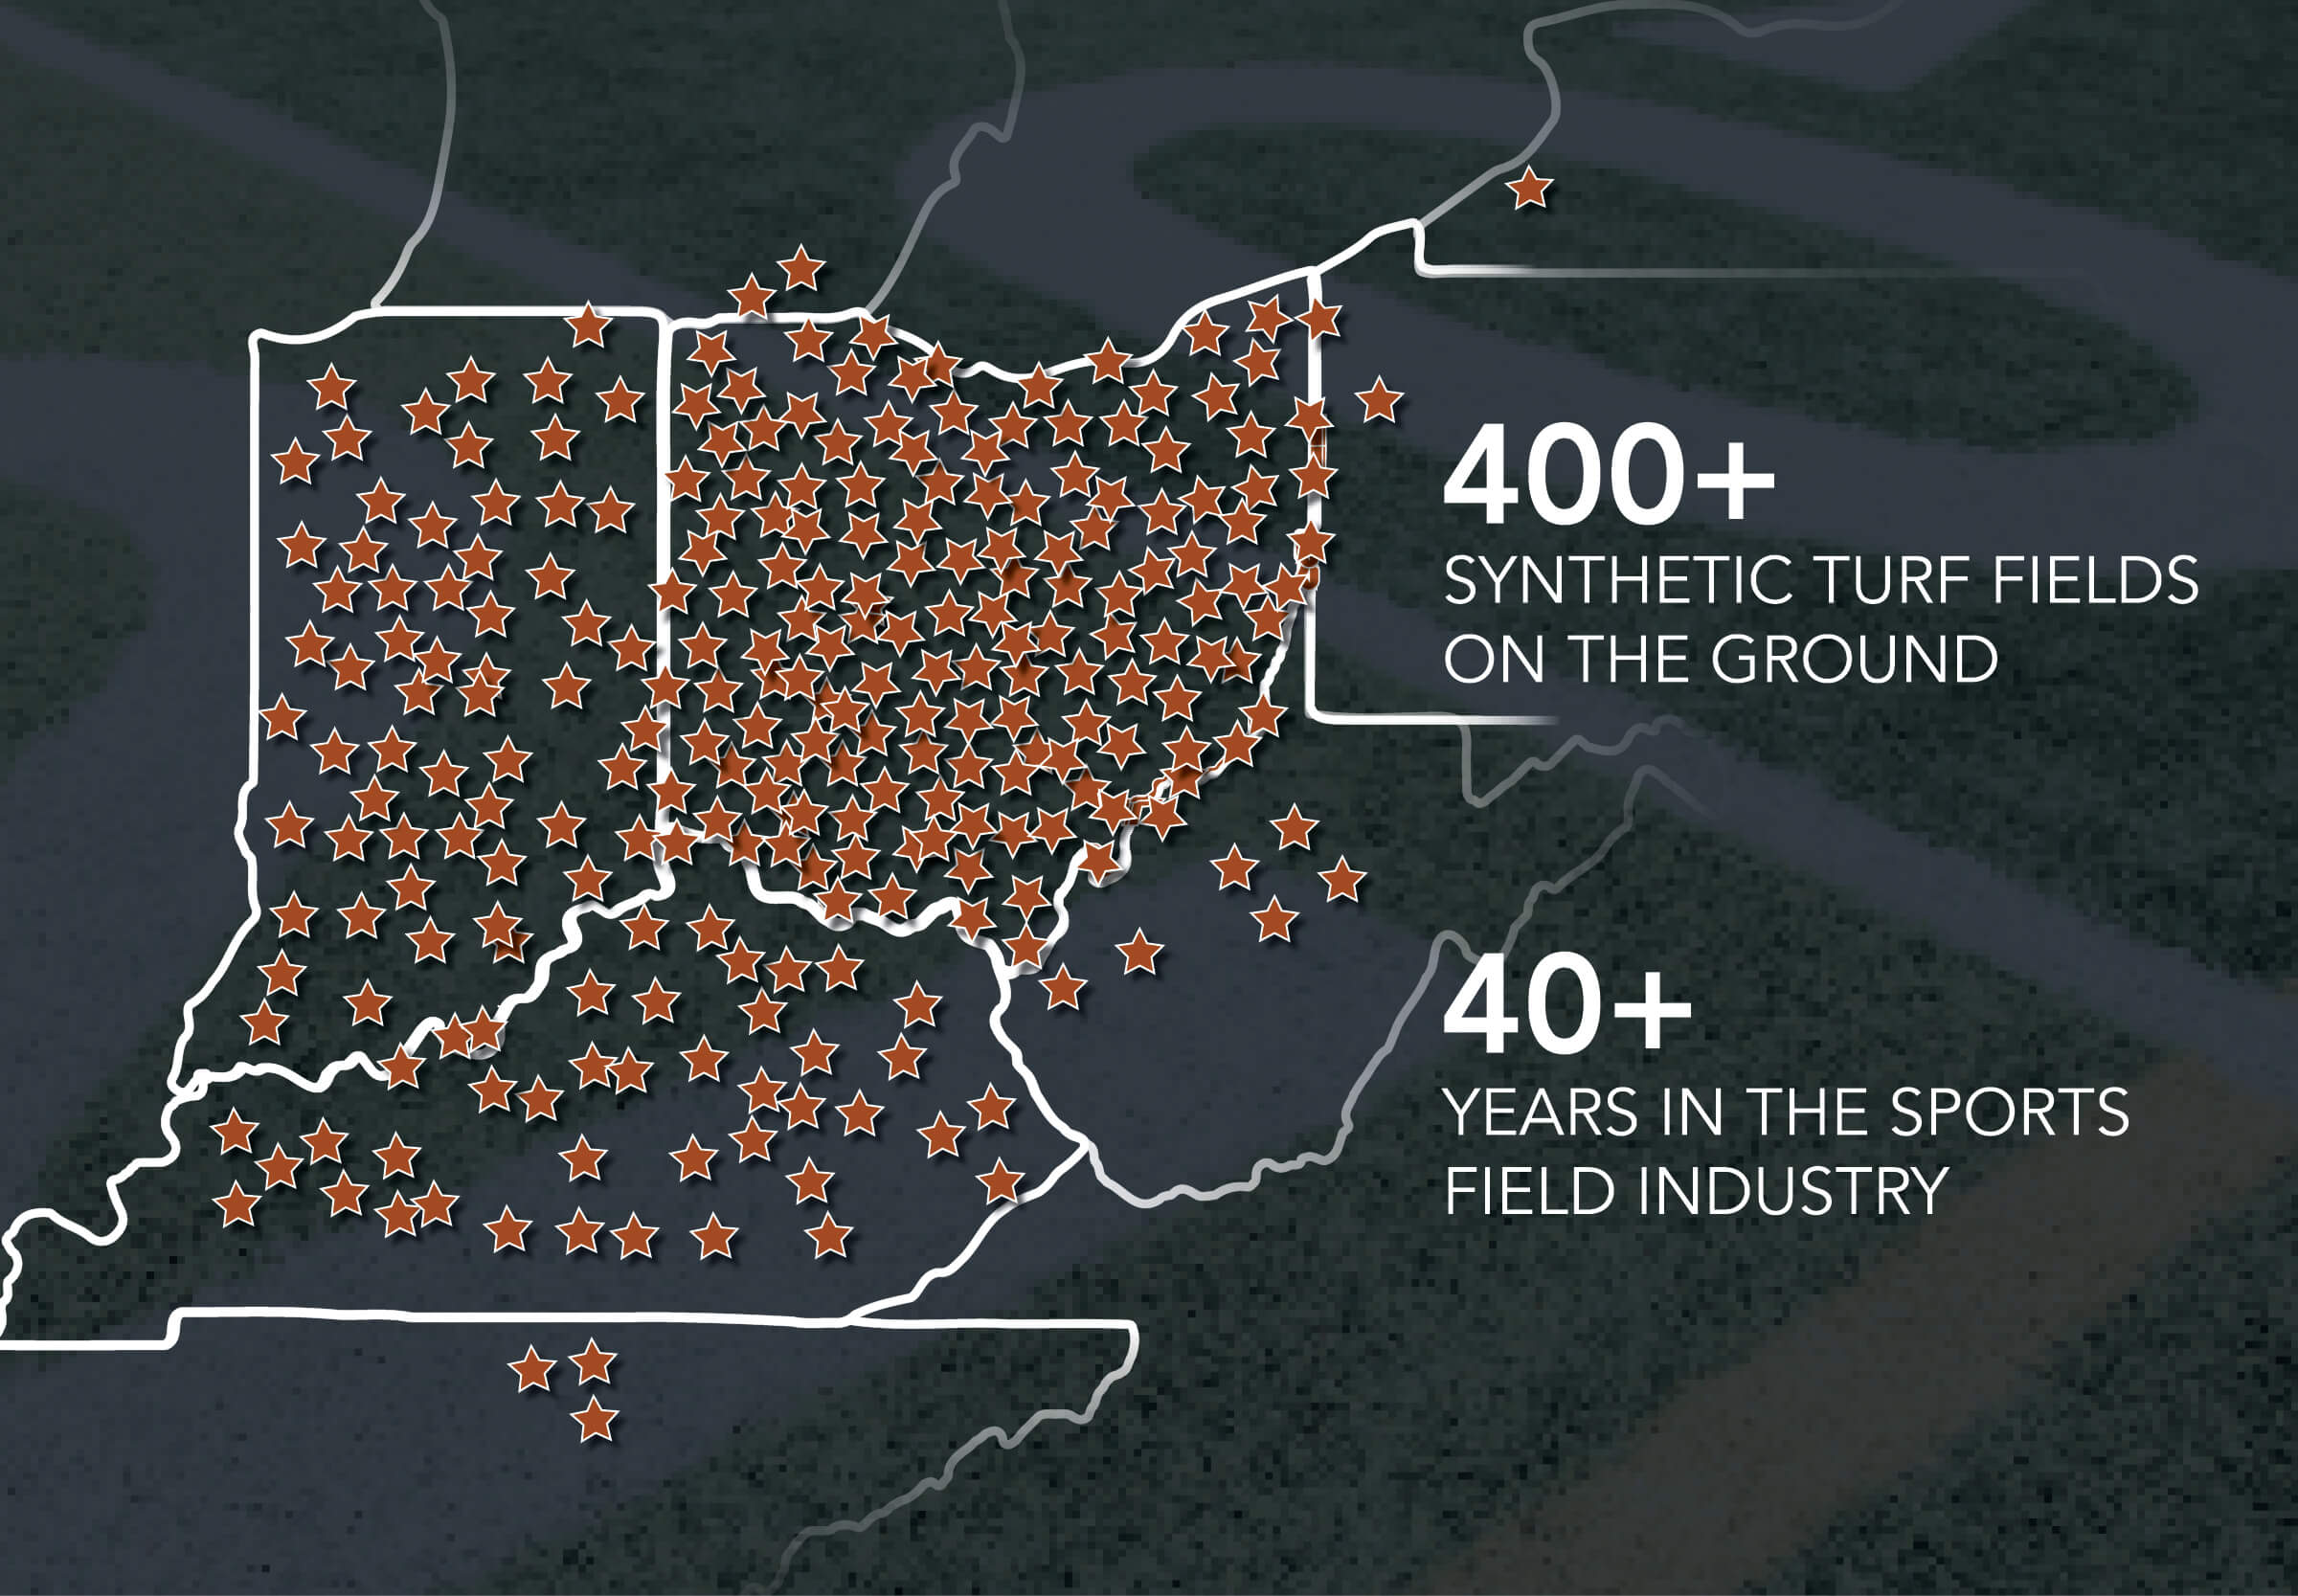 Map of sports field locations with embedded text: 400+ synthetic turf fields on the ground; 40+ years in the sports field industry